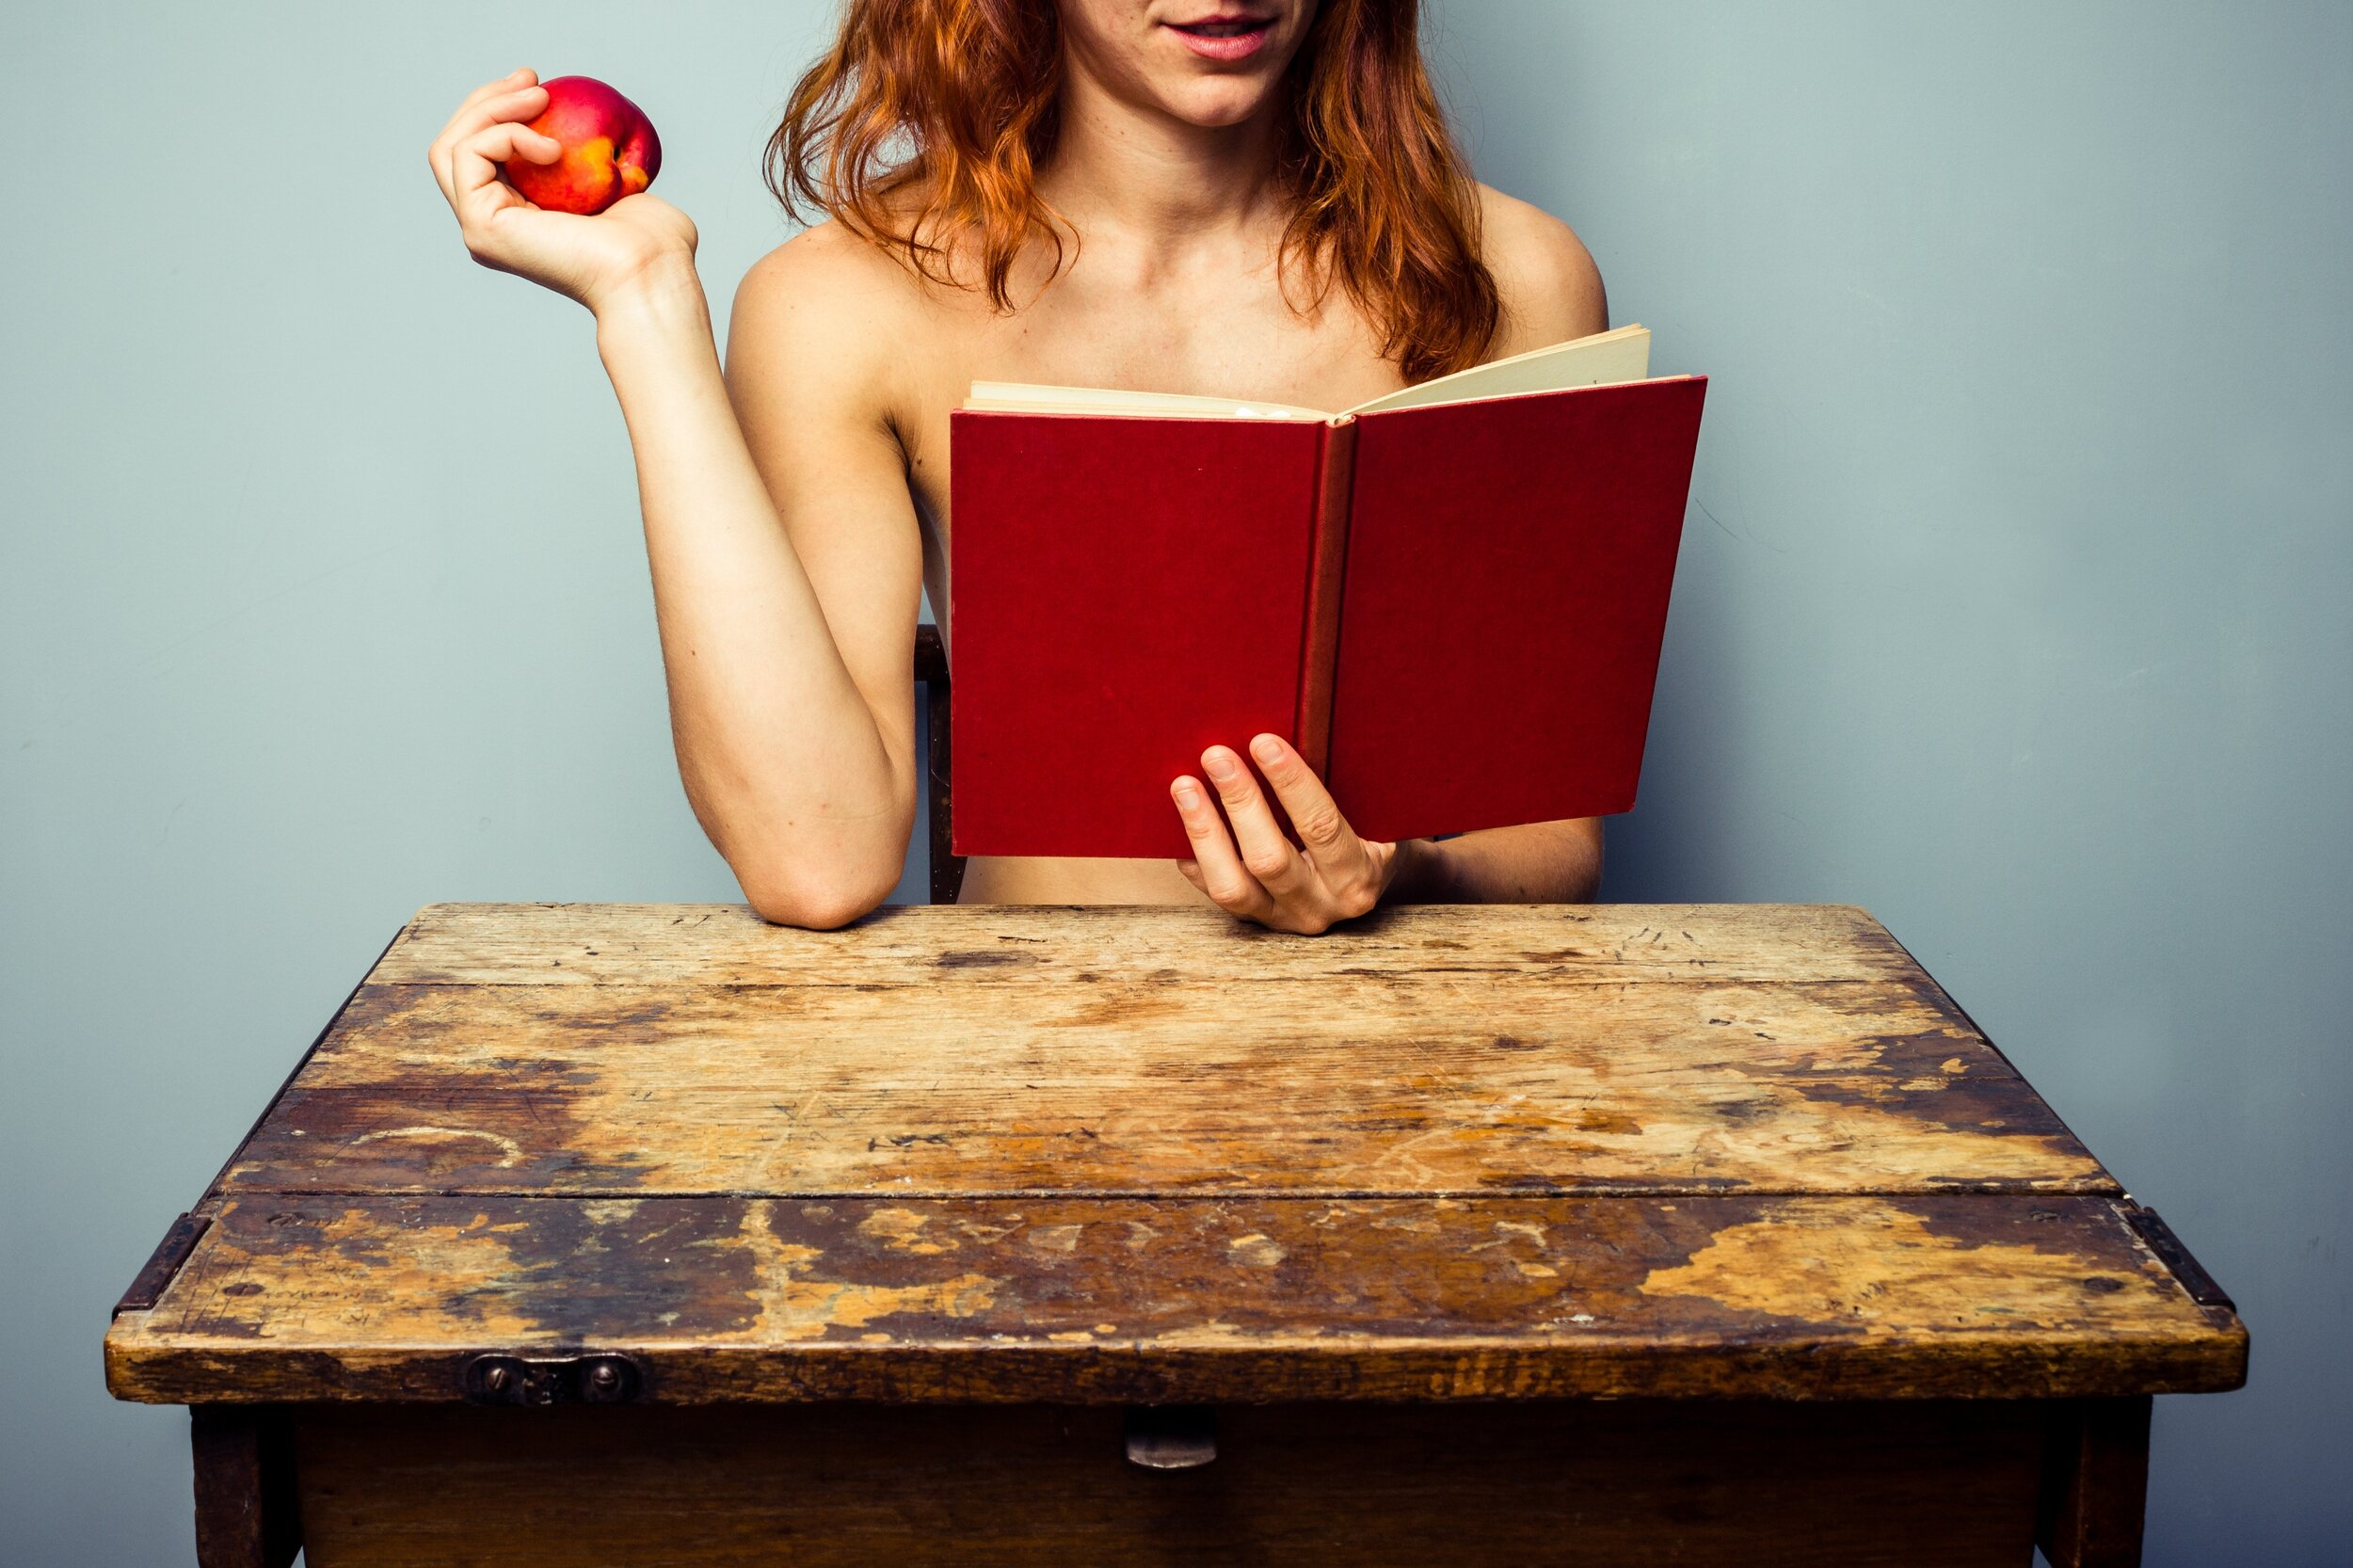 Lockdown Reading Recommendations for People Who Like to Read About Sex